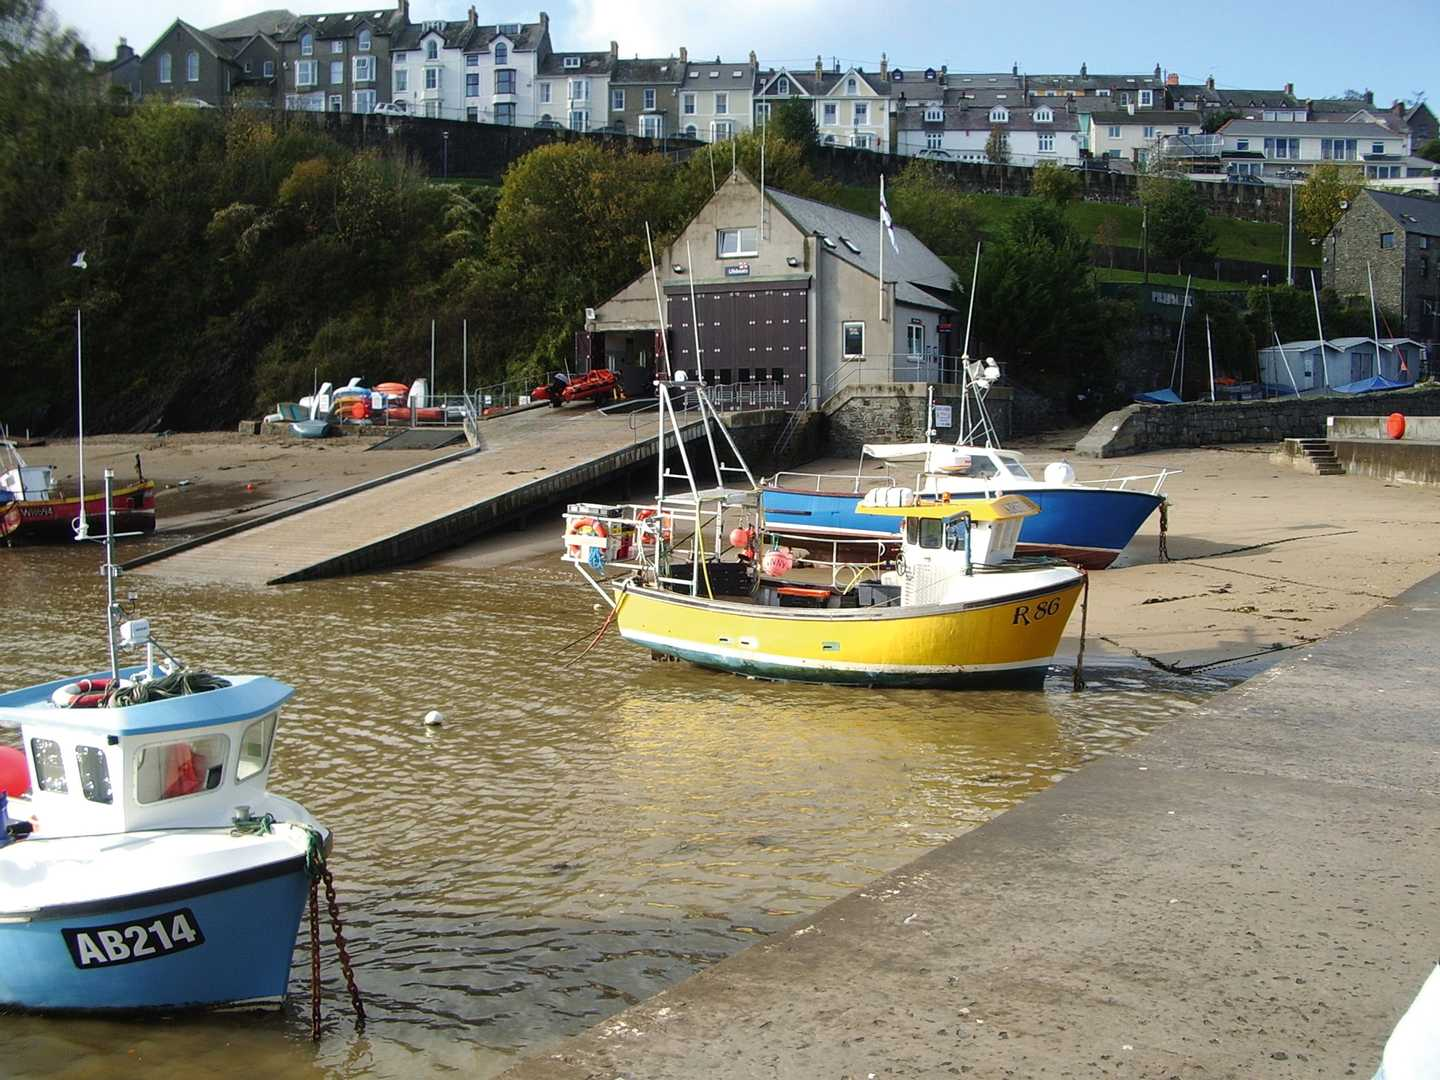 Boats on New Quay harbour